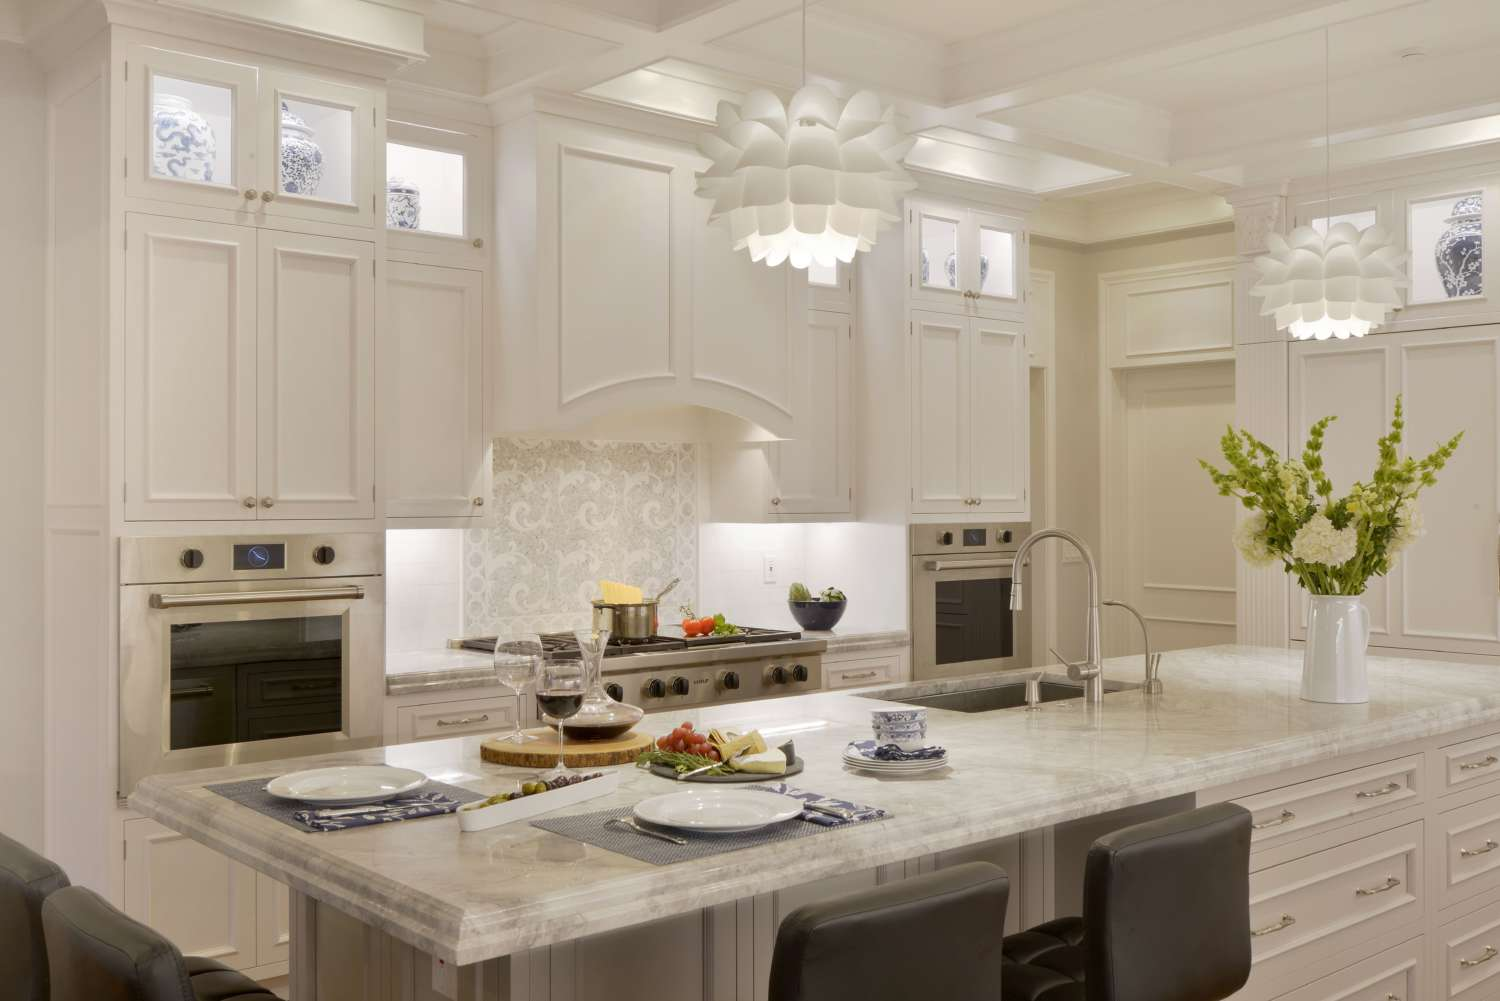 Well-lit transitional kitchen with coffered ceiling, white painted custom cabinets and elegant marble-topped island.